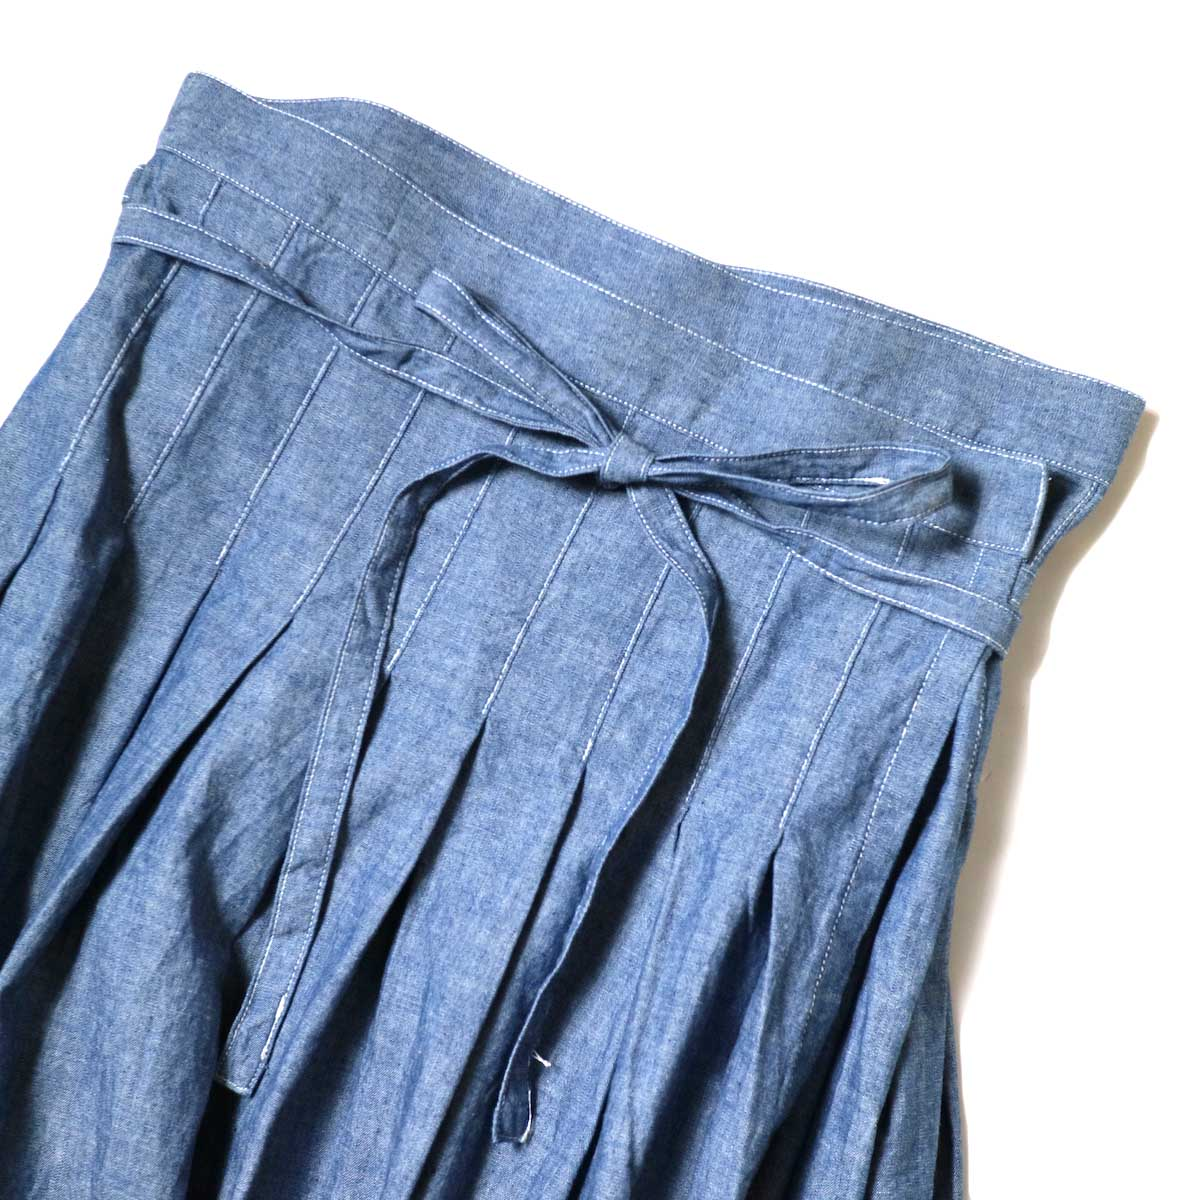 ARMEN / Pleated Wrap Skirt (Blue Chambray) ウエストアップ①